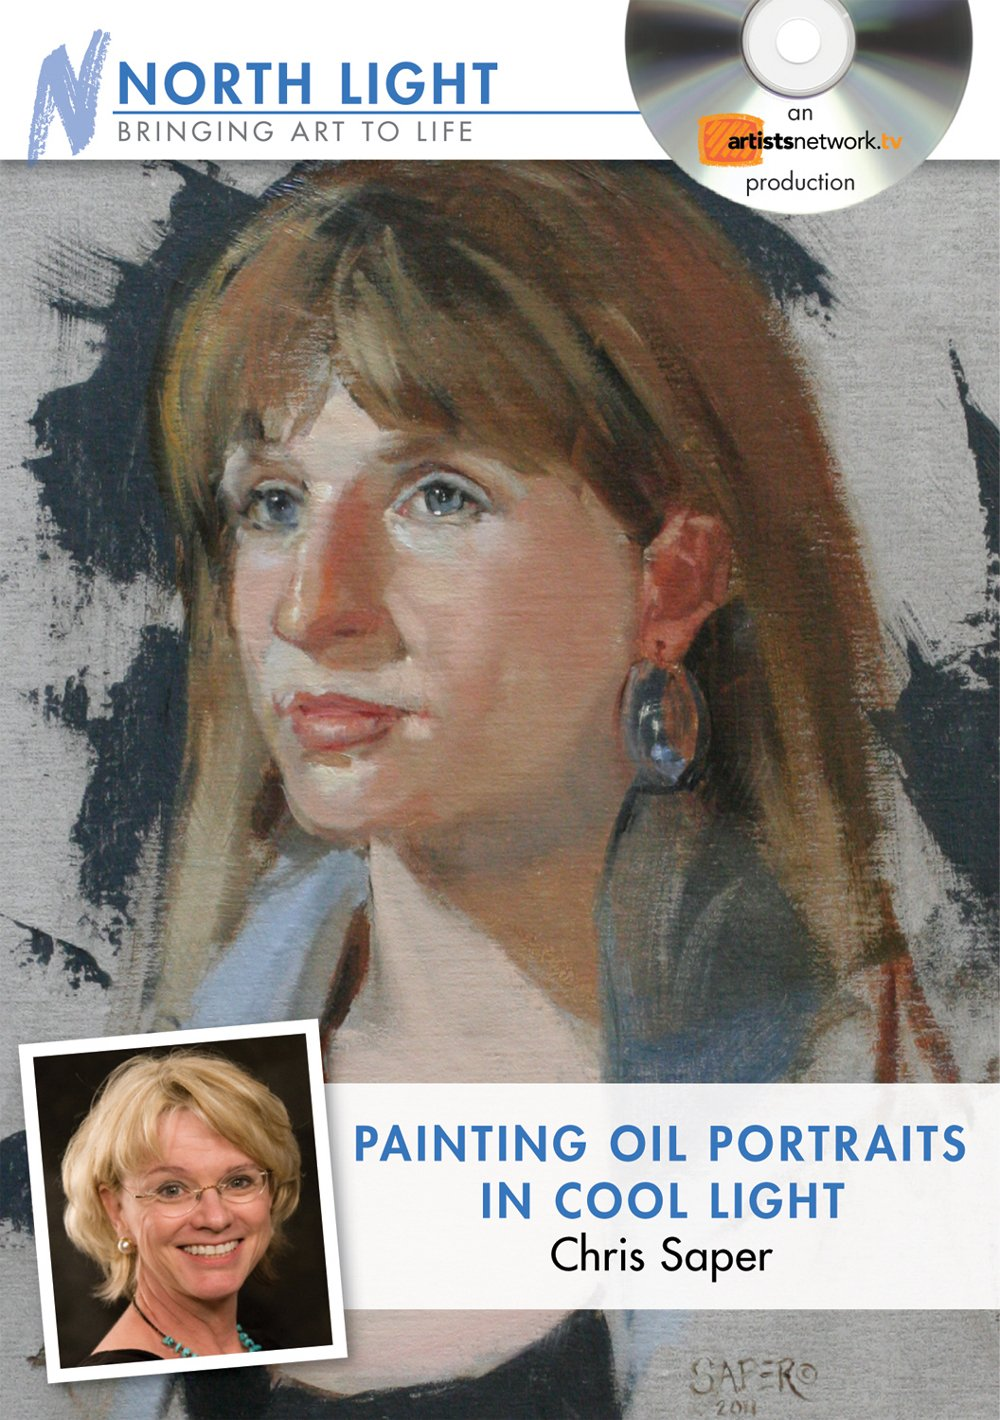 Painting Oil Portraits in Cool Light with Chris Saper